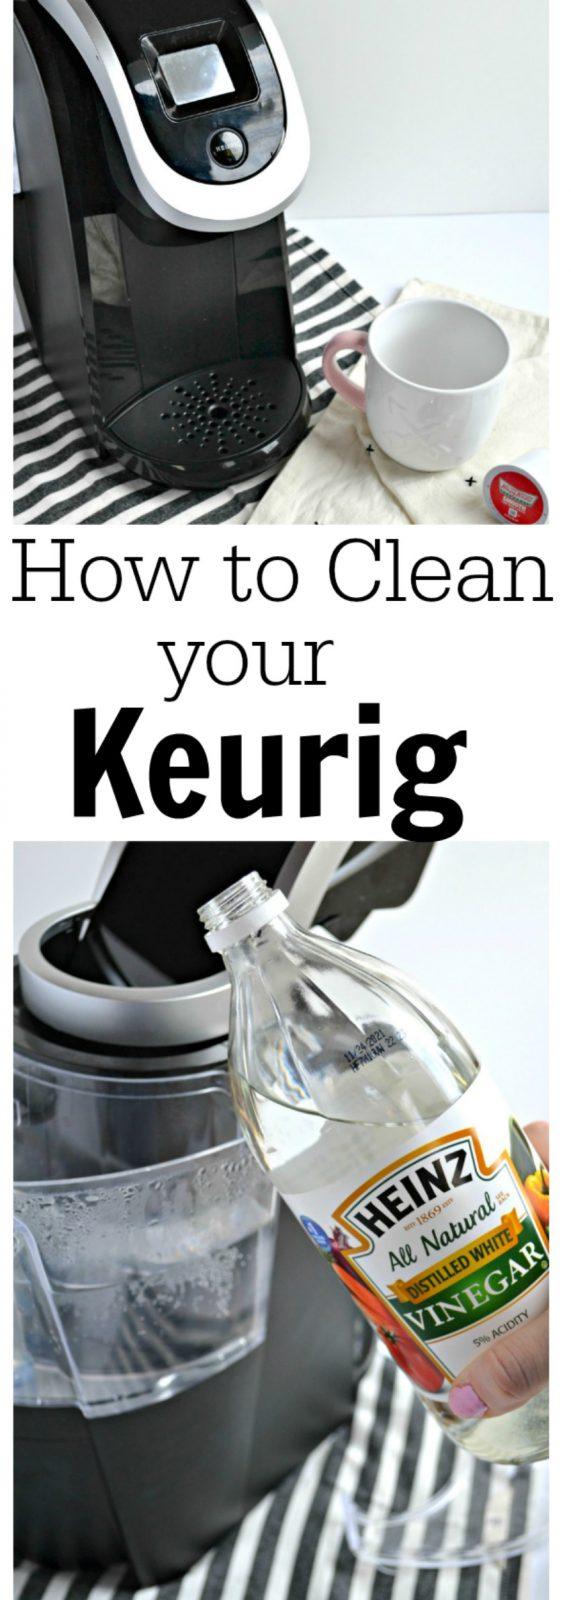 clean a keurig coffee maker